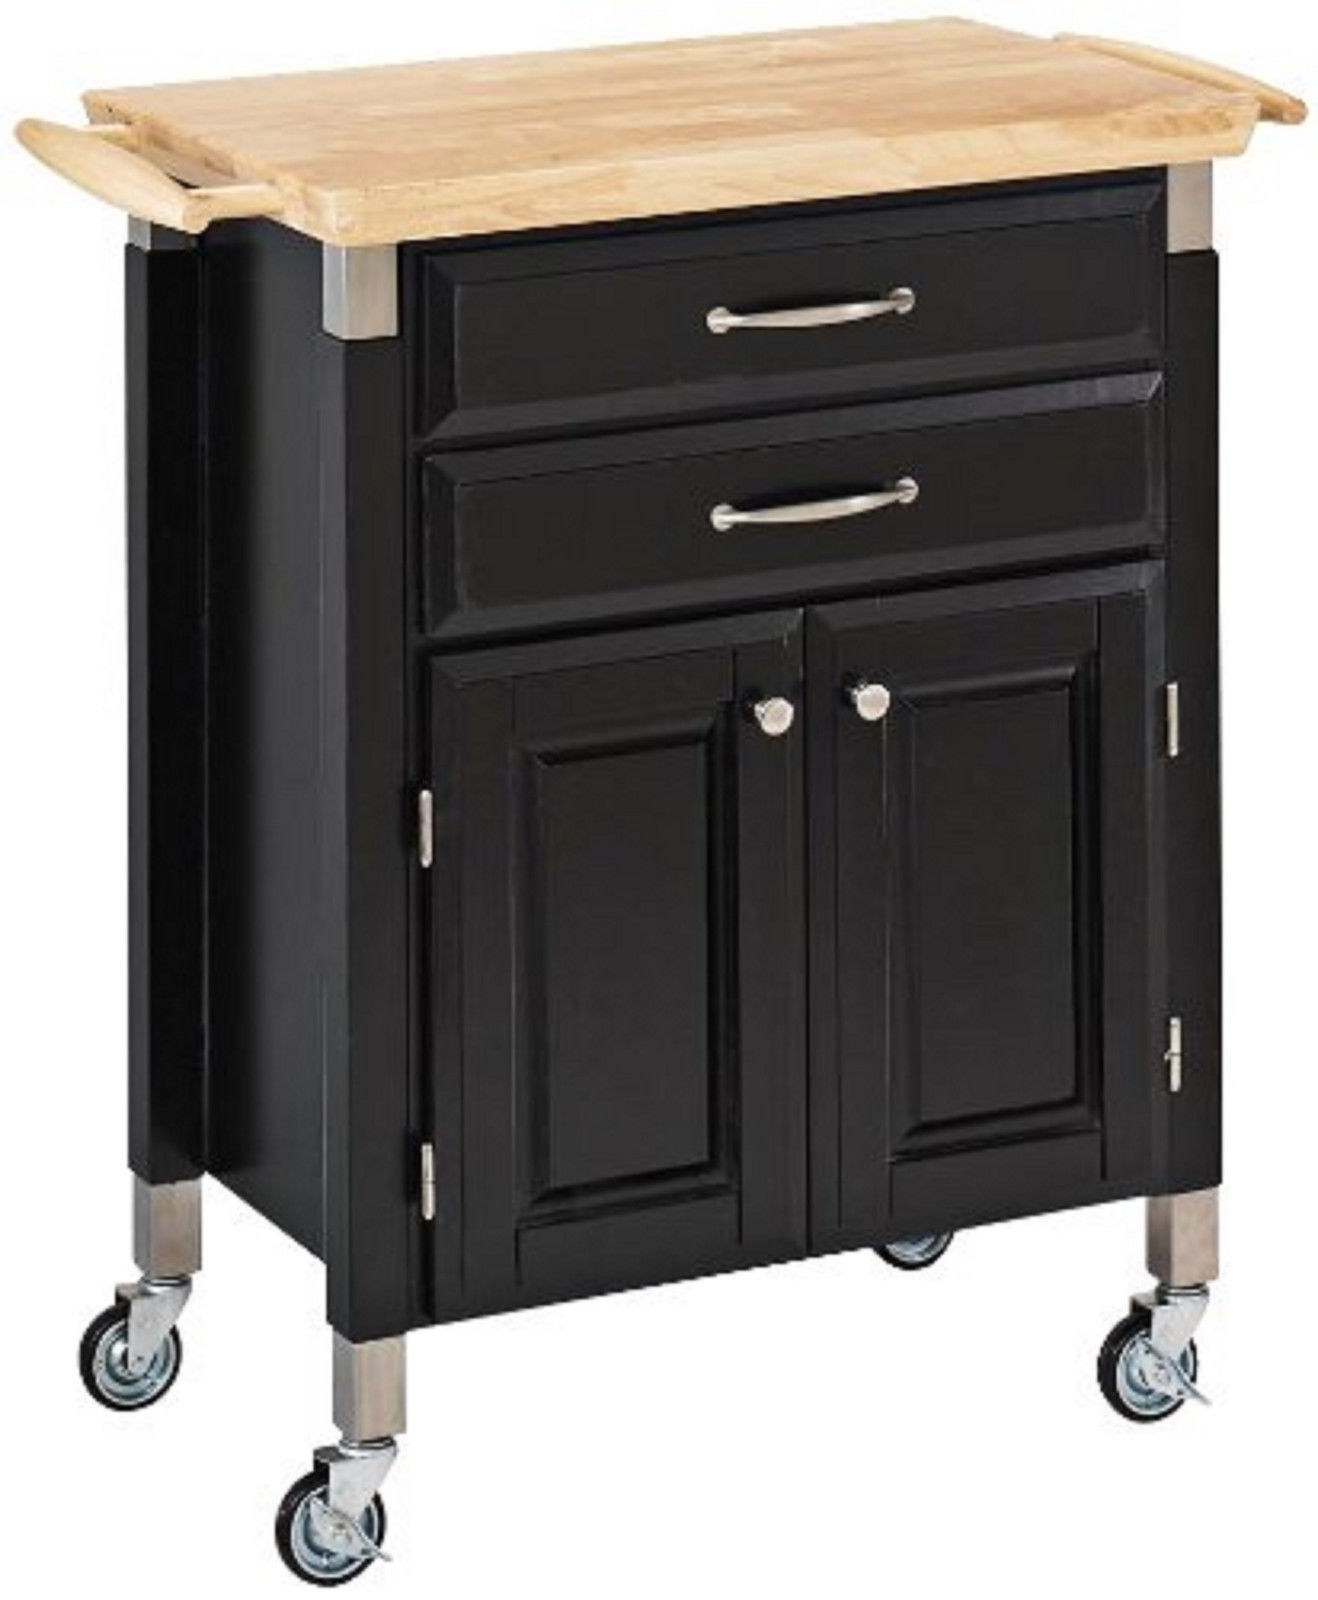 Serving Cart Food Prep Station Kitchen Patio Deck Outdoor